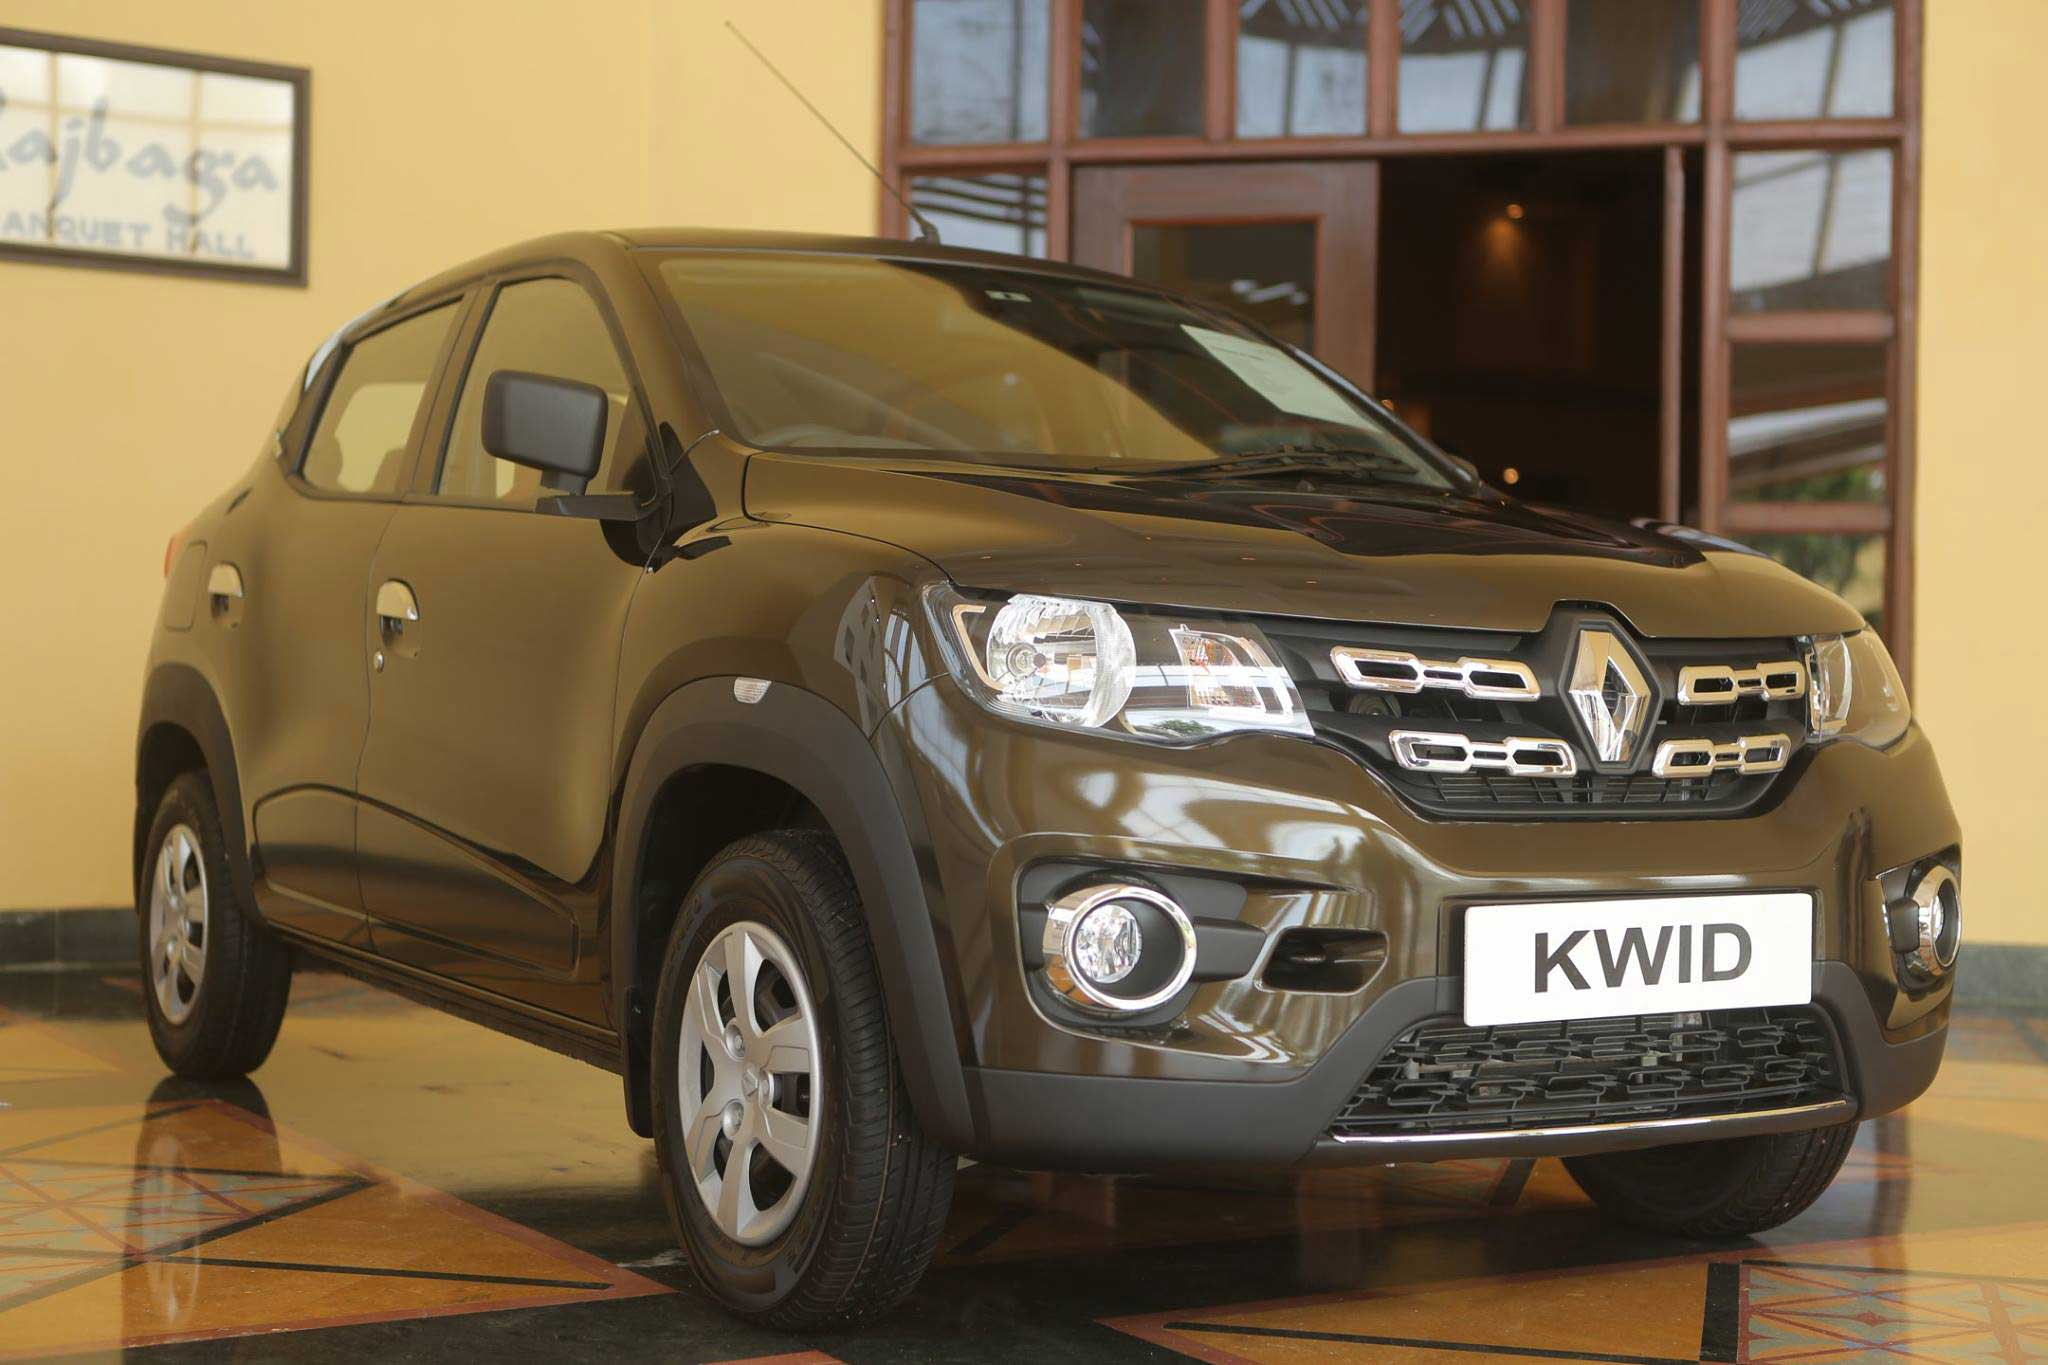 renault kwid rxl exterior image gallery pictures photos. Black Bedroom Furniture Sets. Home Design Ideas